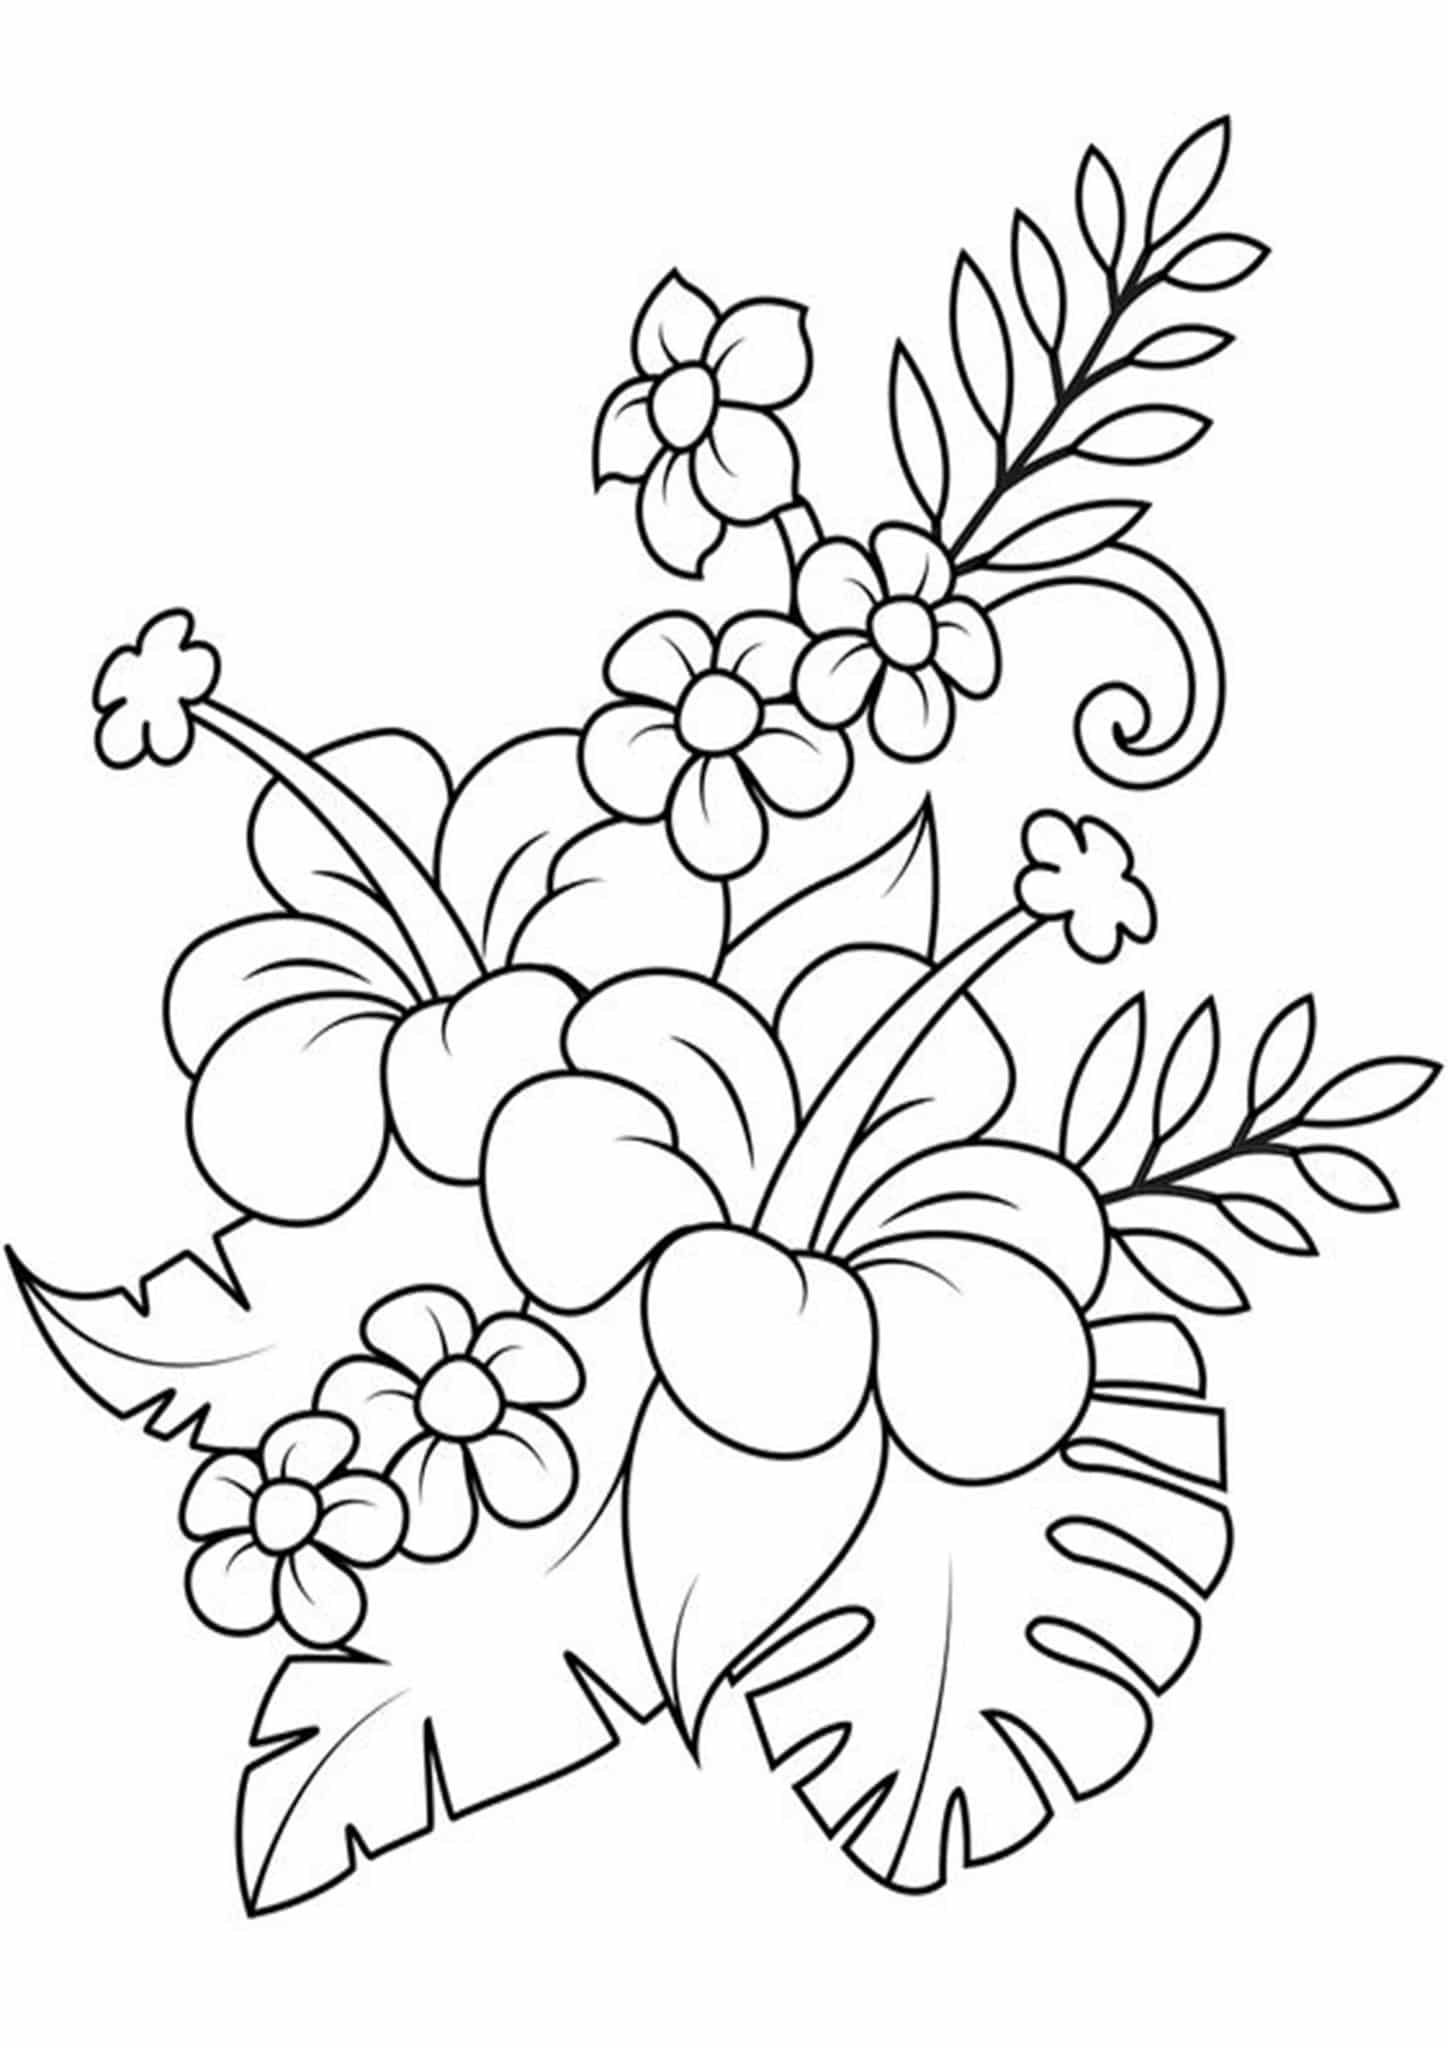 flower coloring pages to print beautiful printable flowers coloring pages print pages coloring to flower